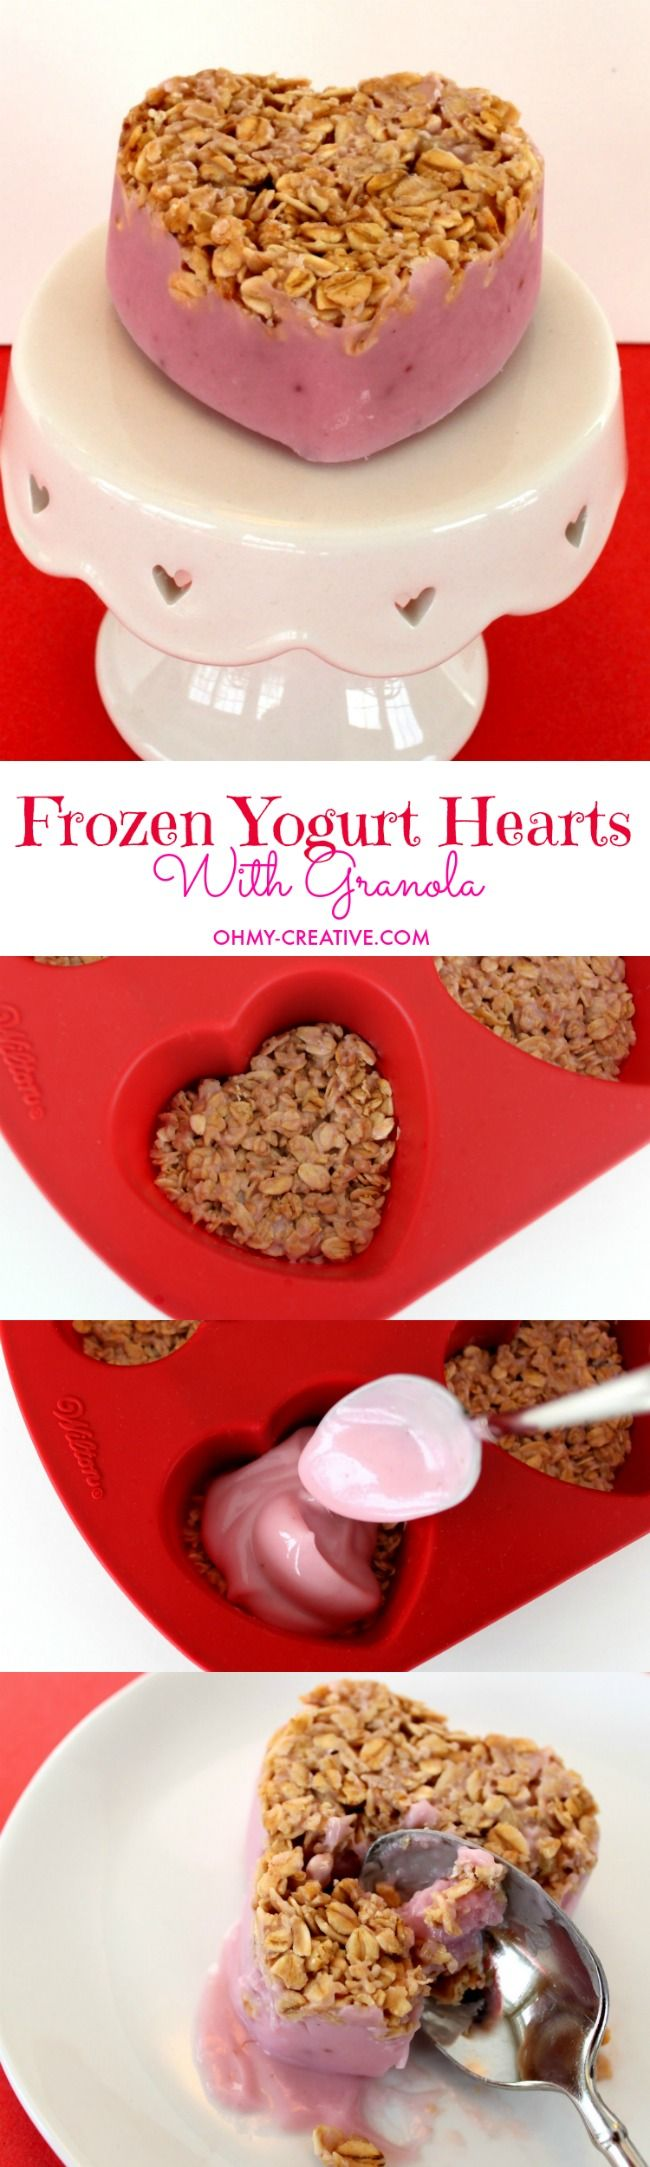 Make these Frozen Yogurt Hearts With Granola to warm the hearts of the ones you love | OHMY-CREATIVE.COM